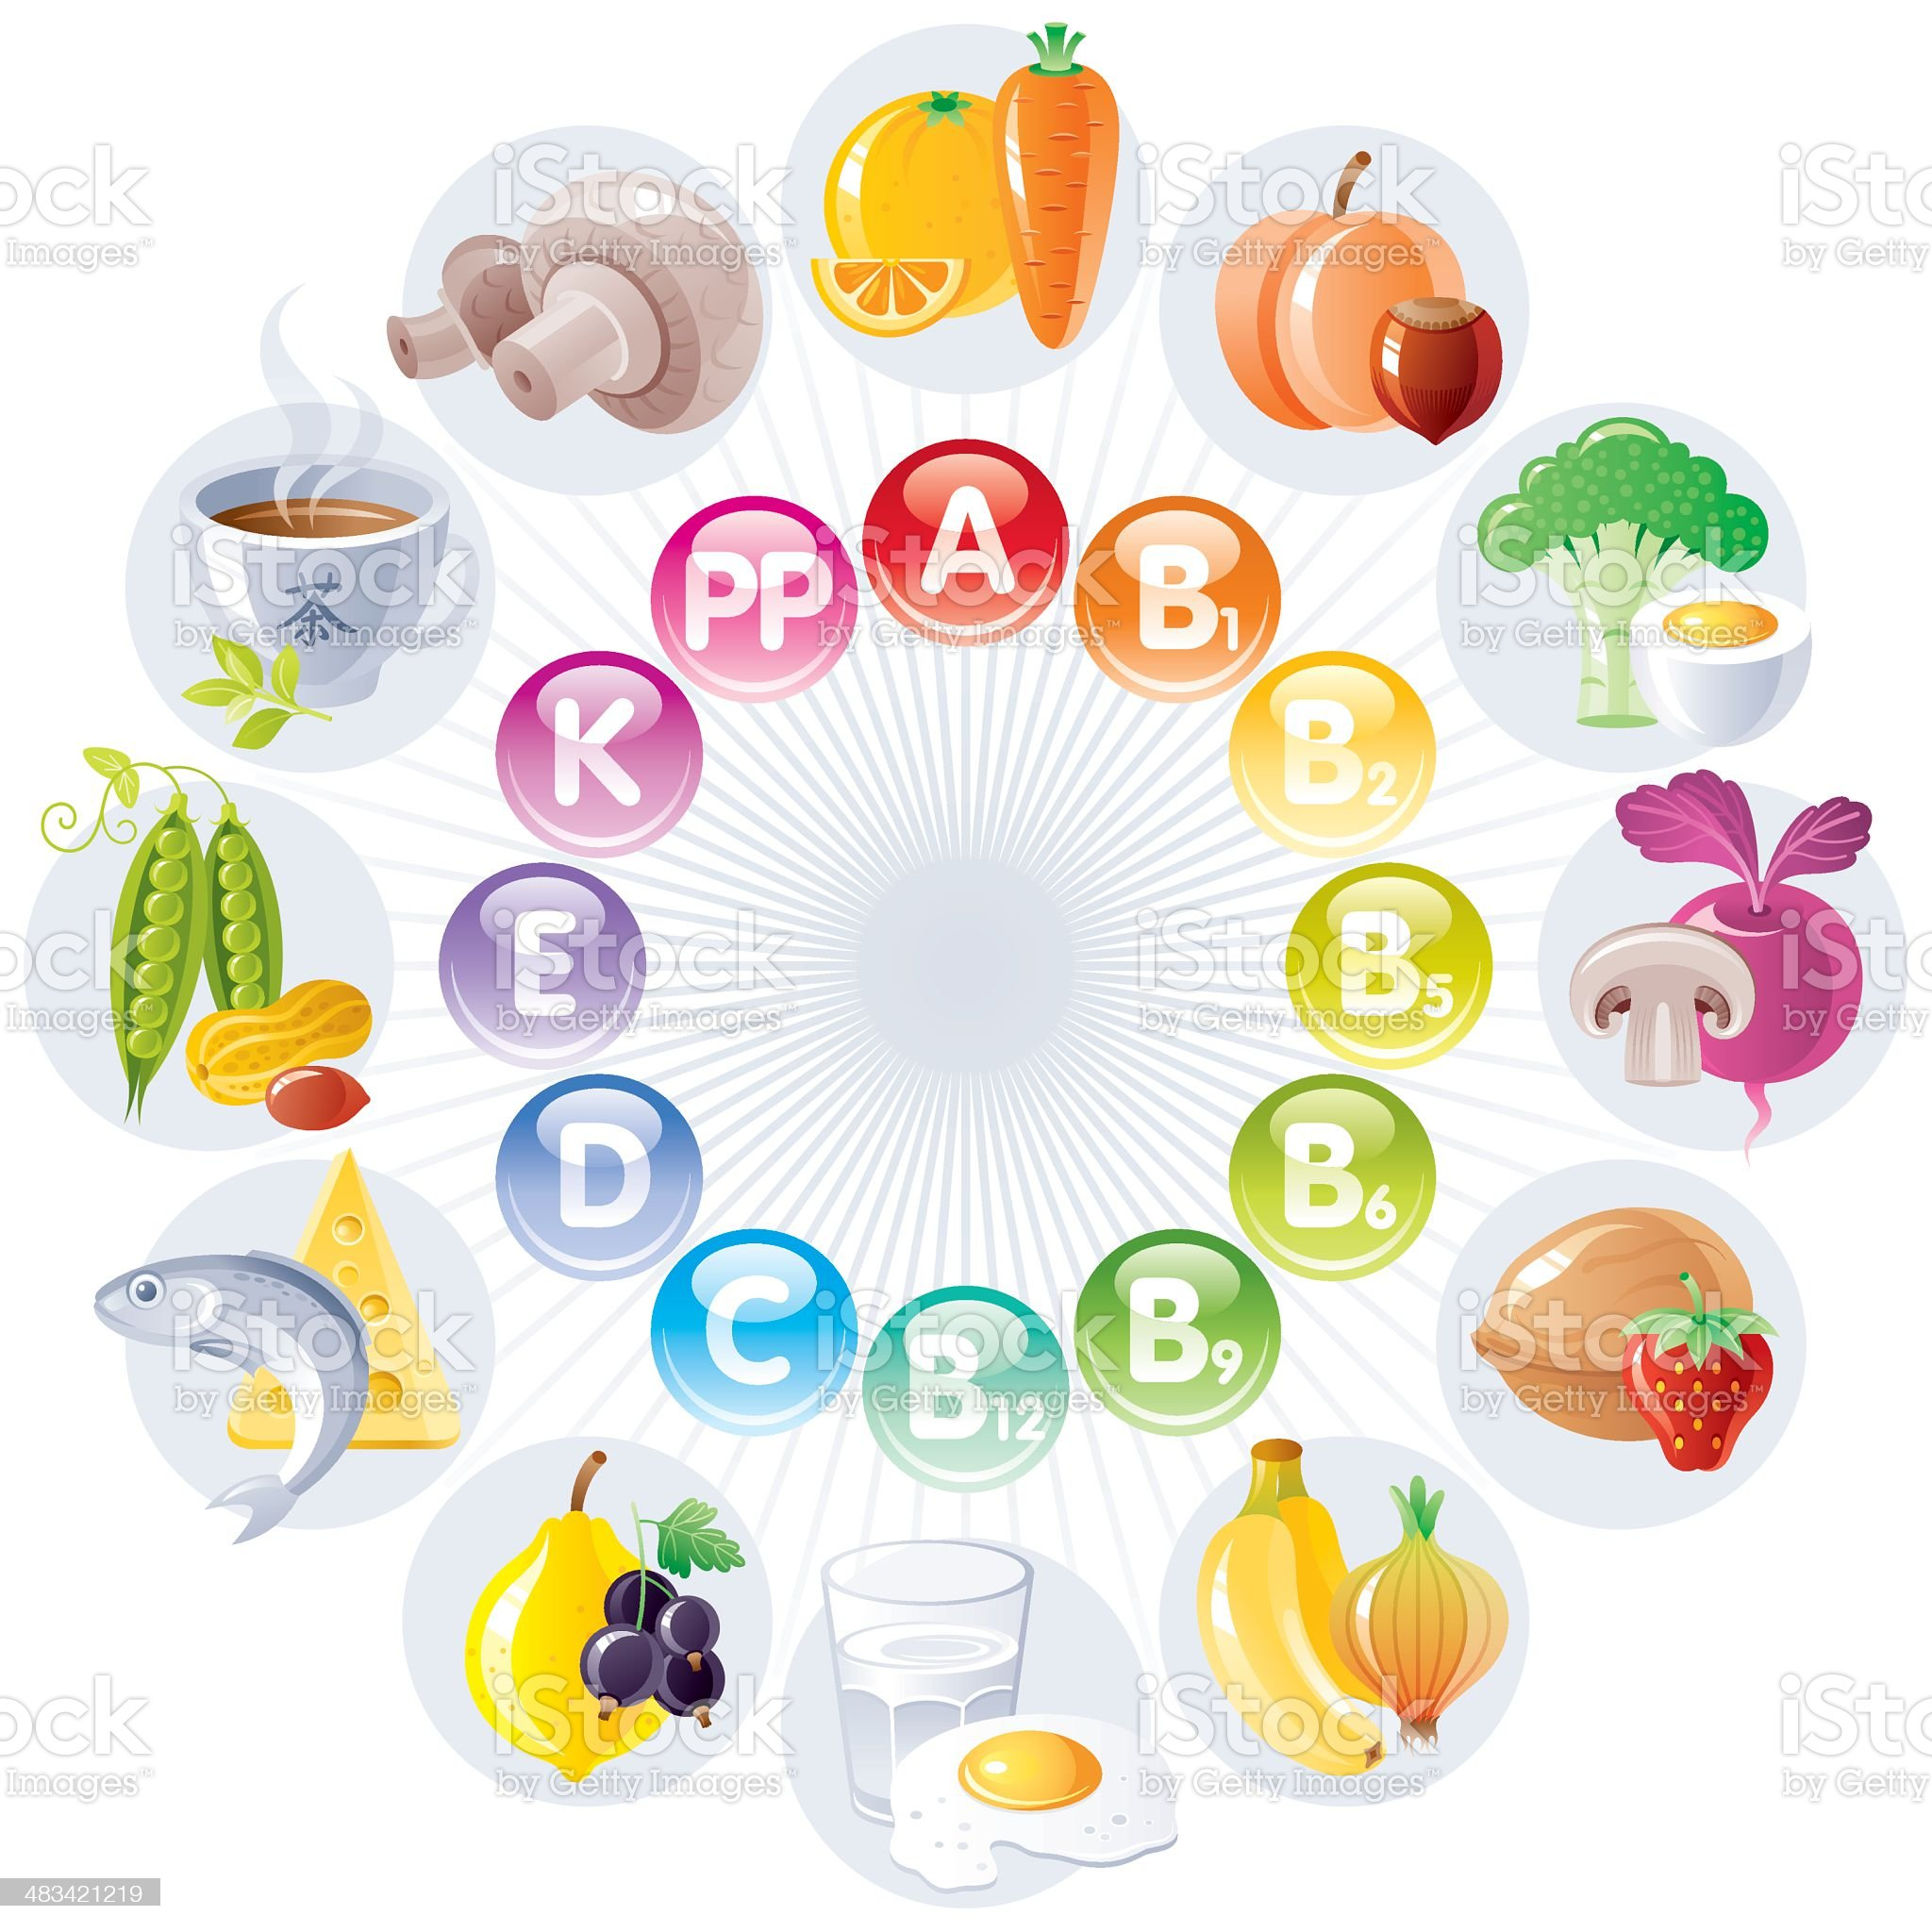 Vitamin's table with food icons royalty-free stock vector art